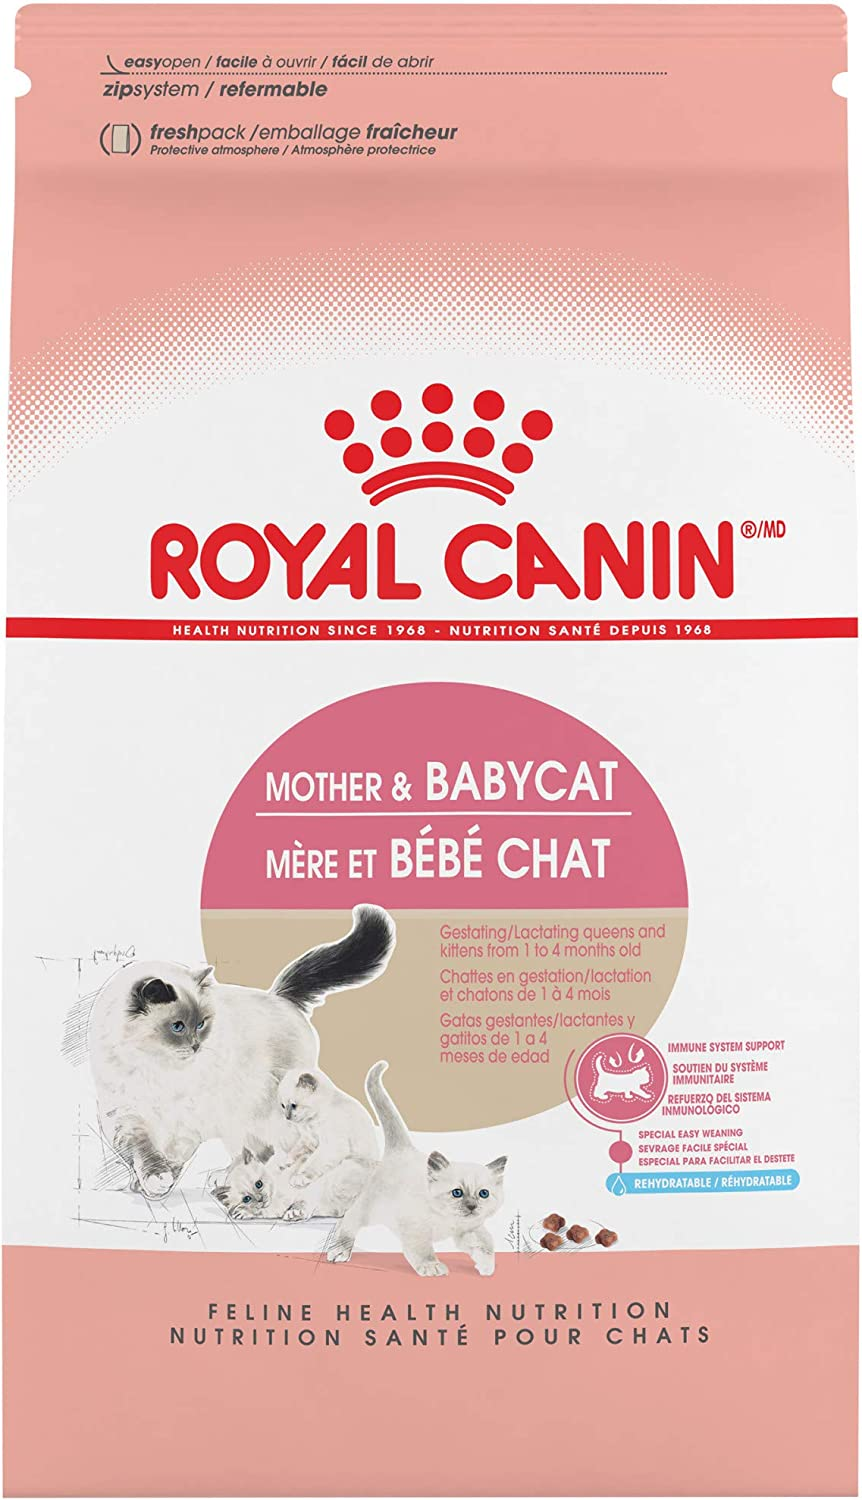 Royal Canin Feline Health Nutrition Mother & Babycat Dry Cat Food for Newborn Kittens and Pregnant or Nursing Cats, 7 Pound Bag